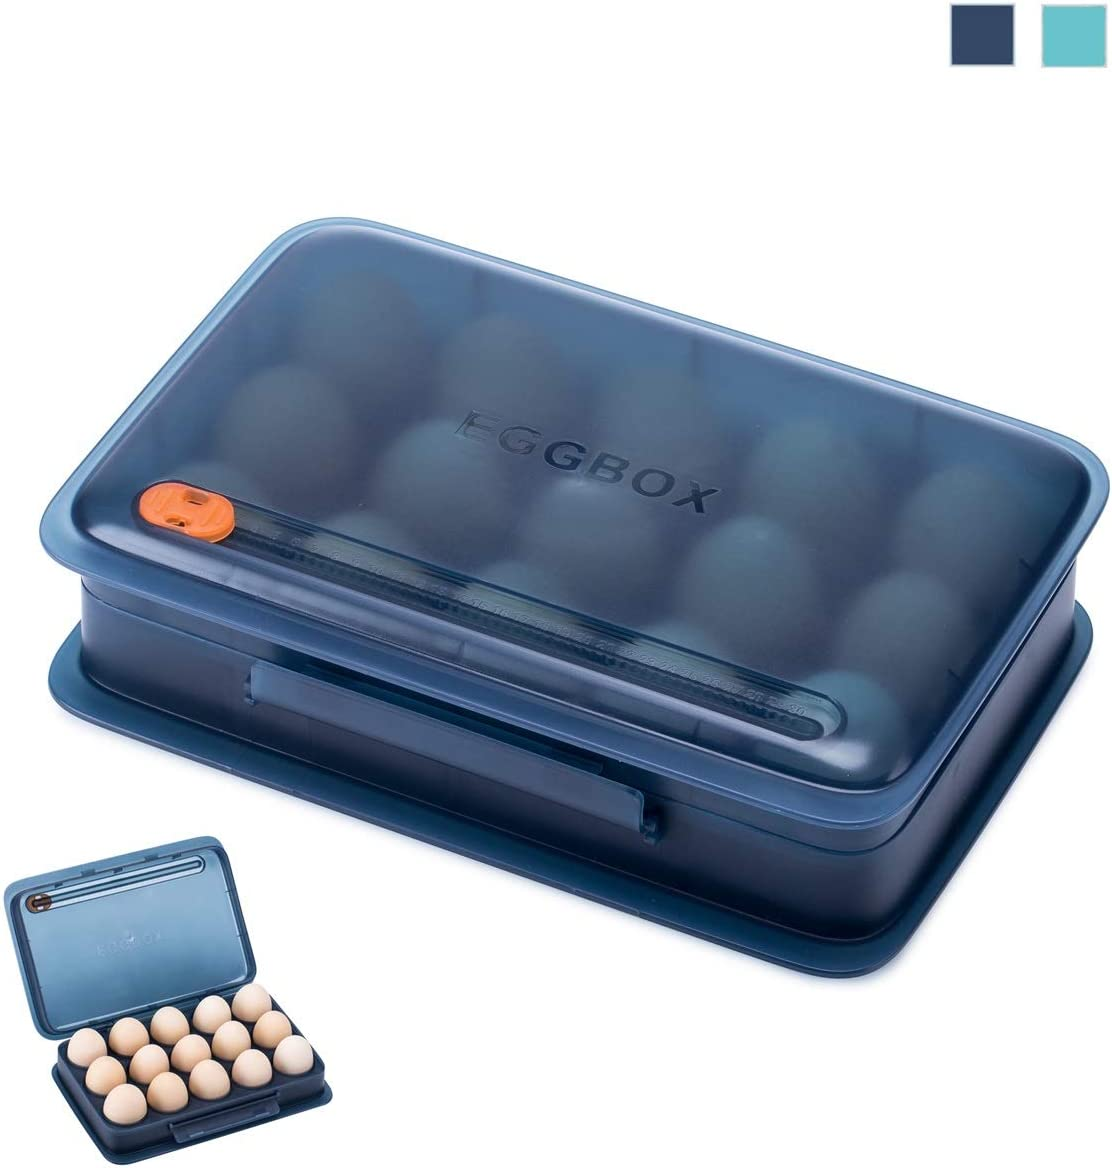 Egg Holder for Refrigerator, Fridge Egg Storage Box Container and Organizer for kitchen, Egg Carrier Bin with Lid, Hold 15 Eggs, Transparent (Navy Blue)